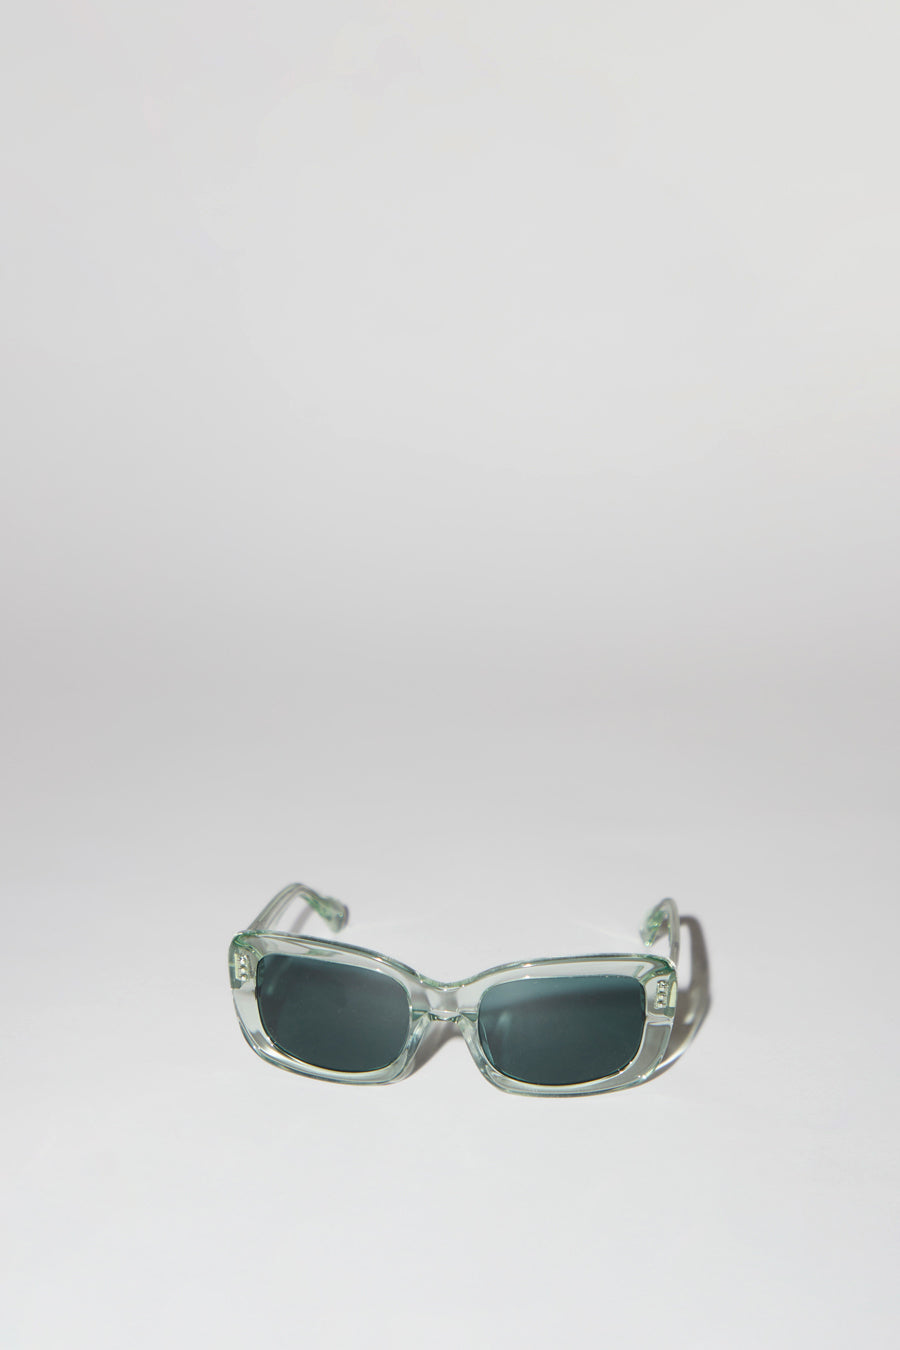 Sun Buddies Junior Sunglasses in Cucumber Water